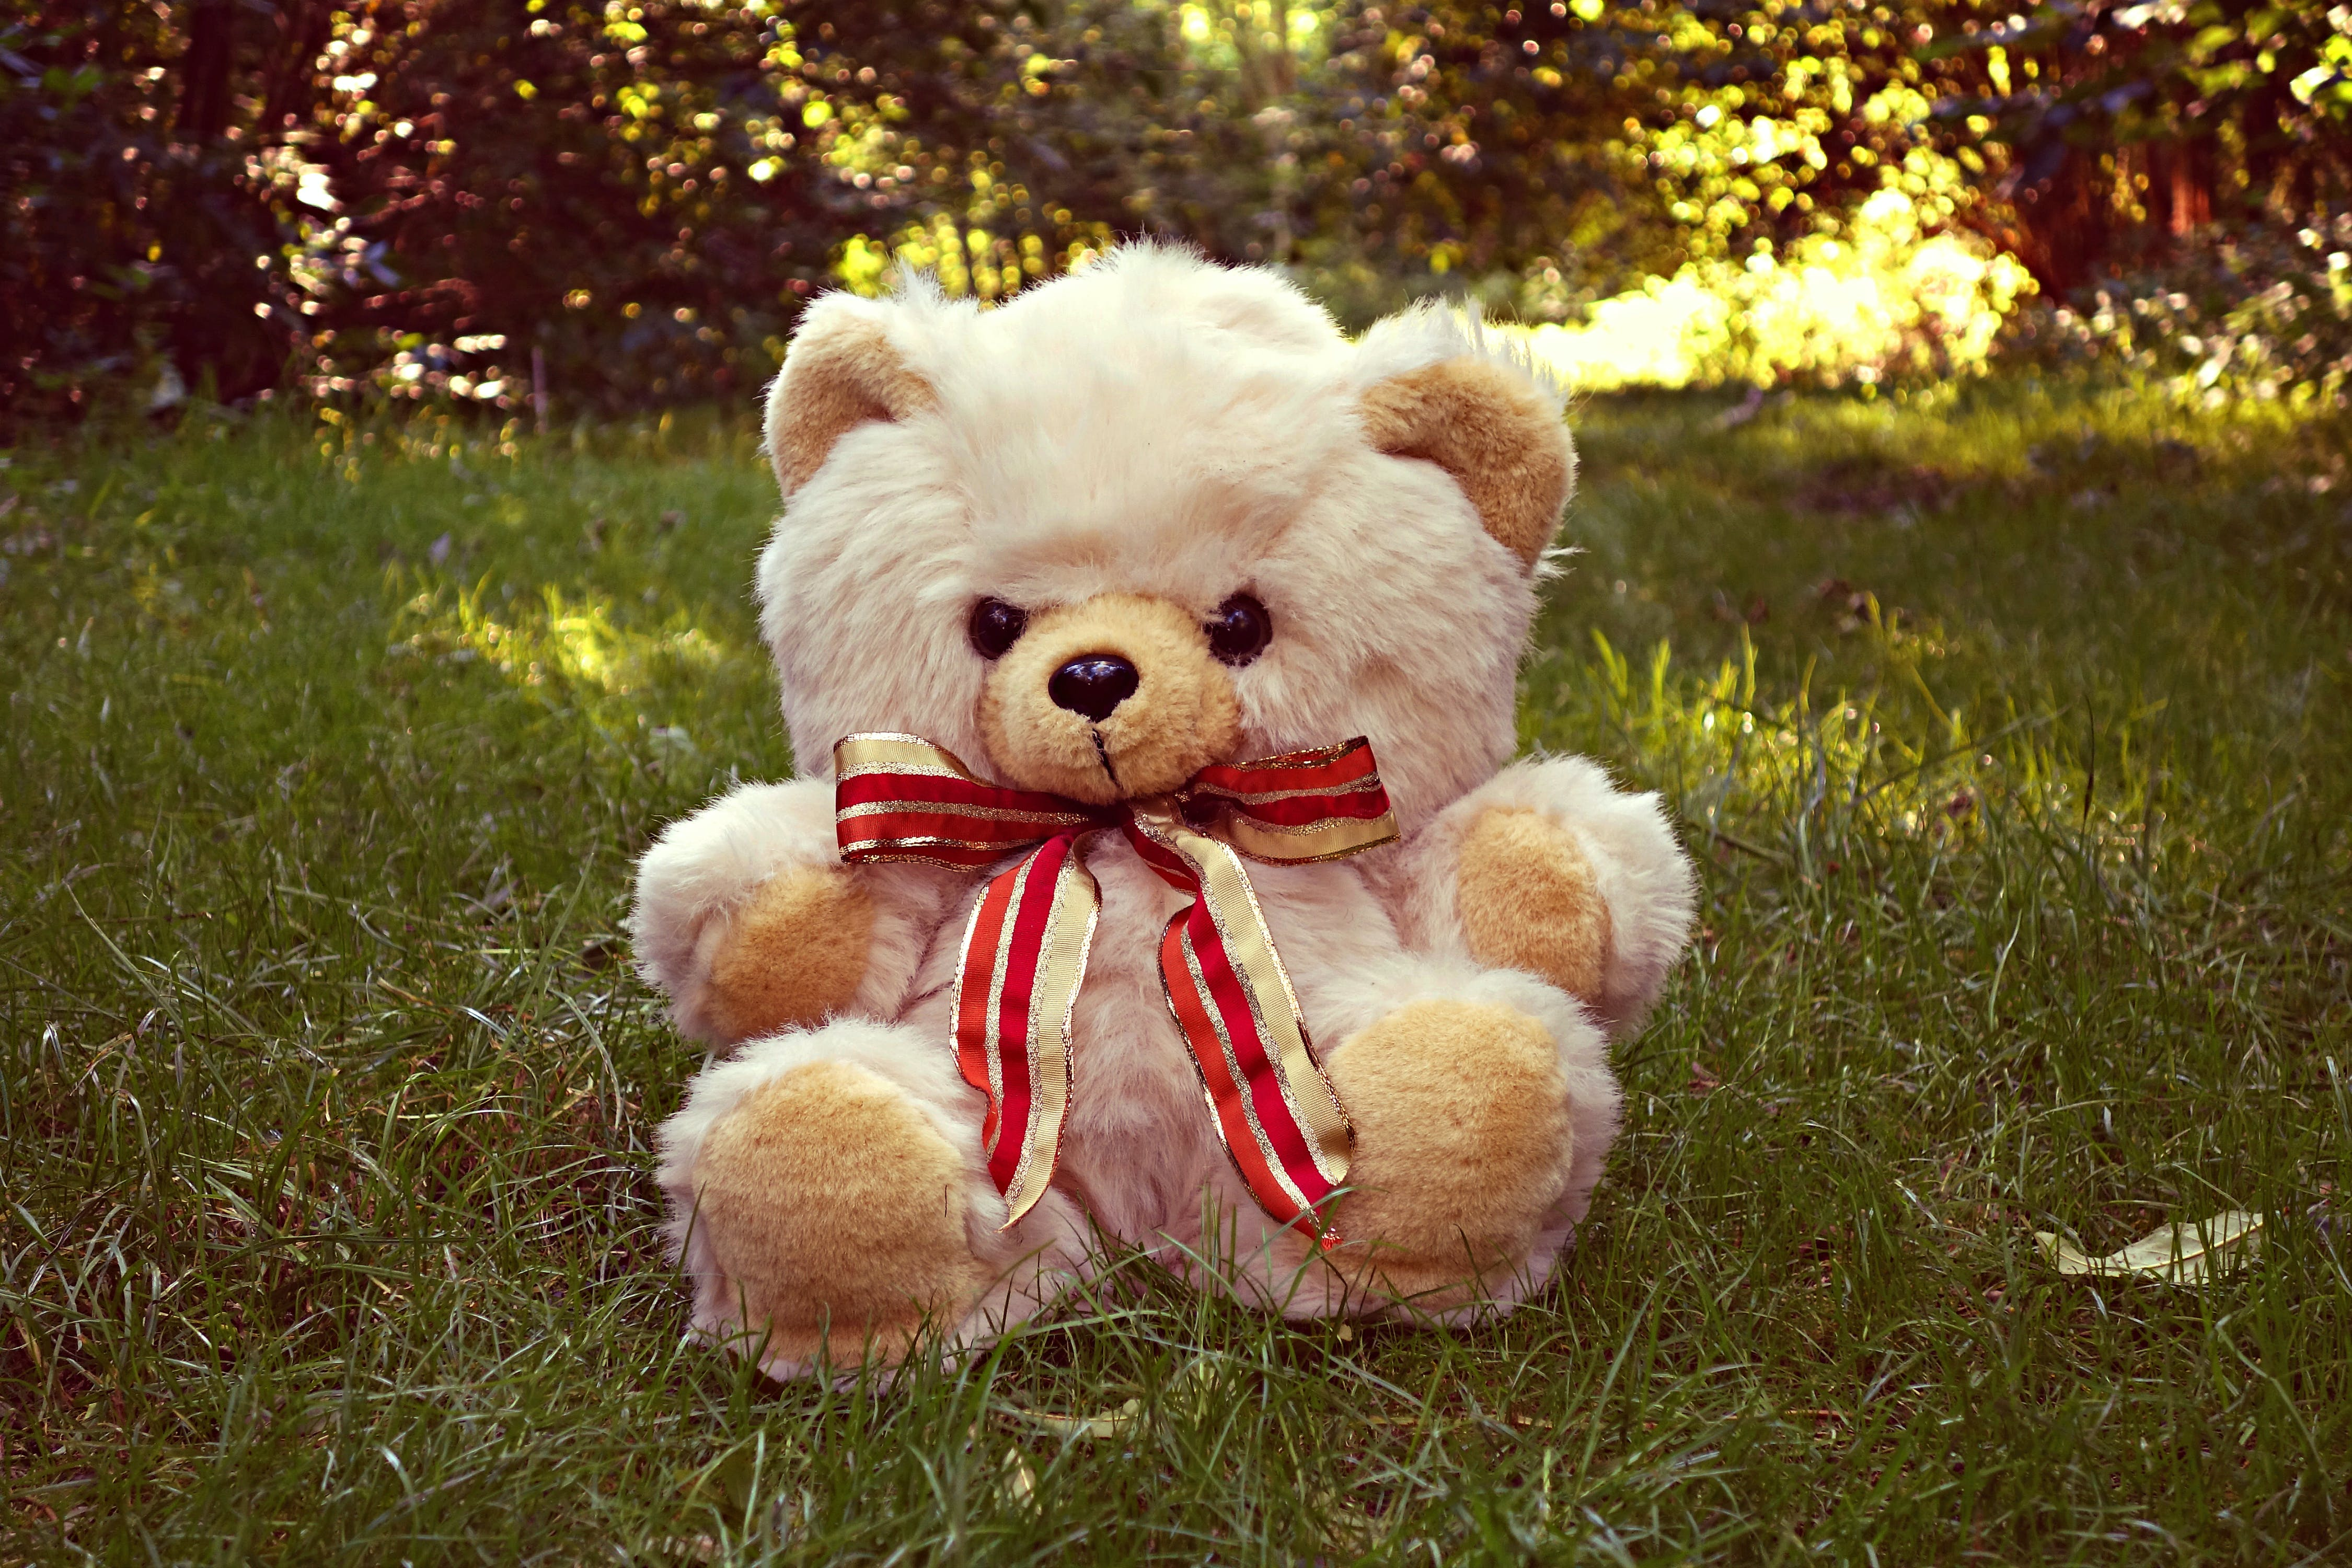 Free stock photo of cute, sweet, bear, cuddly toy